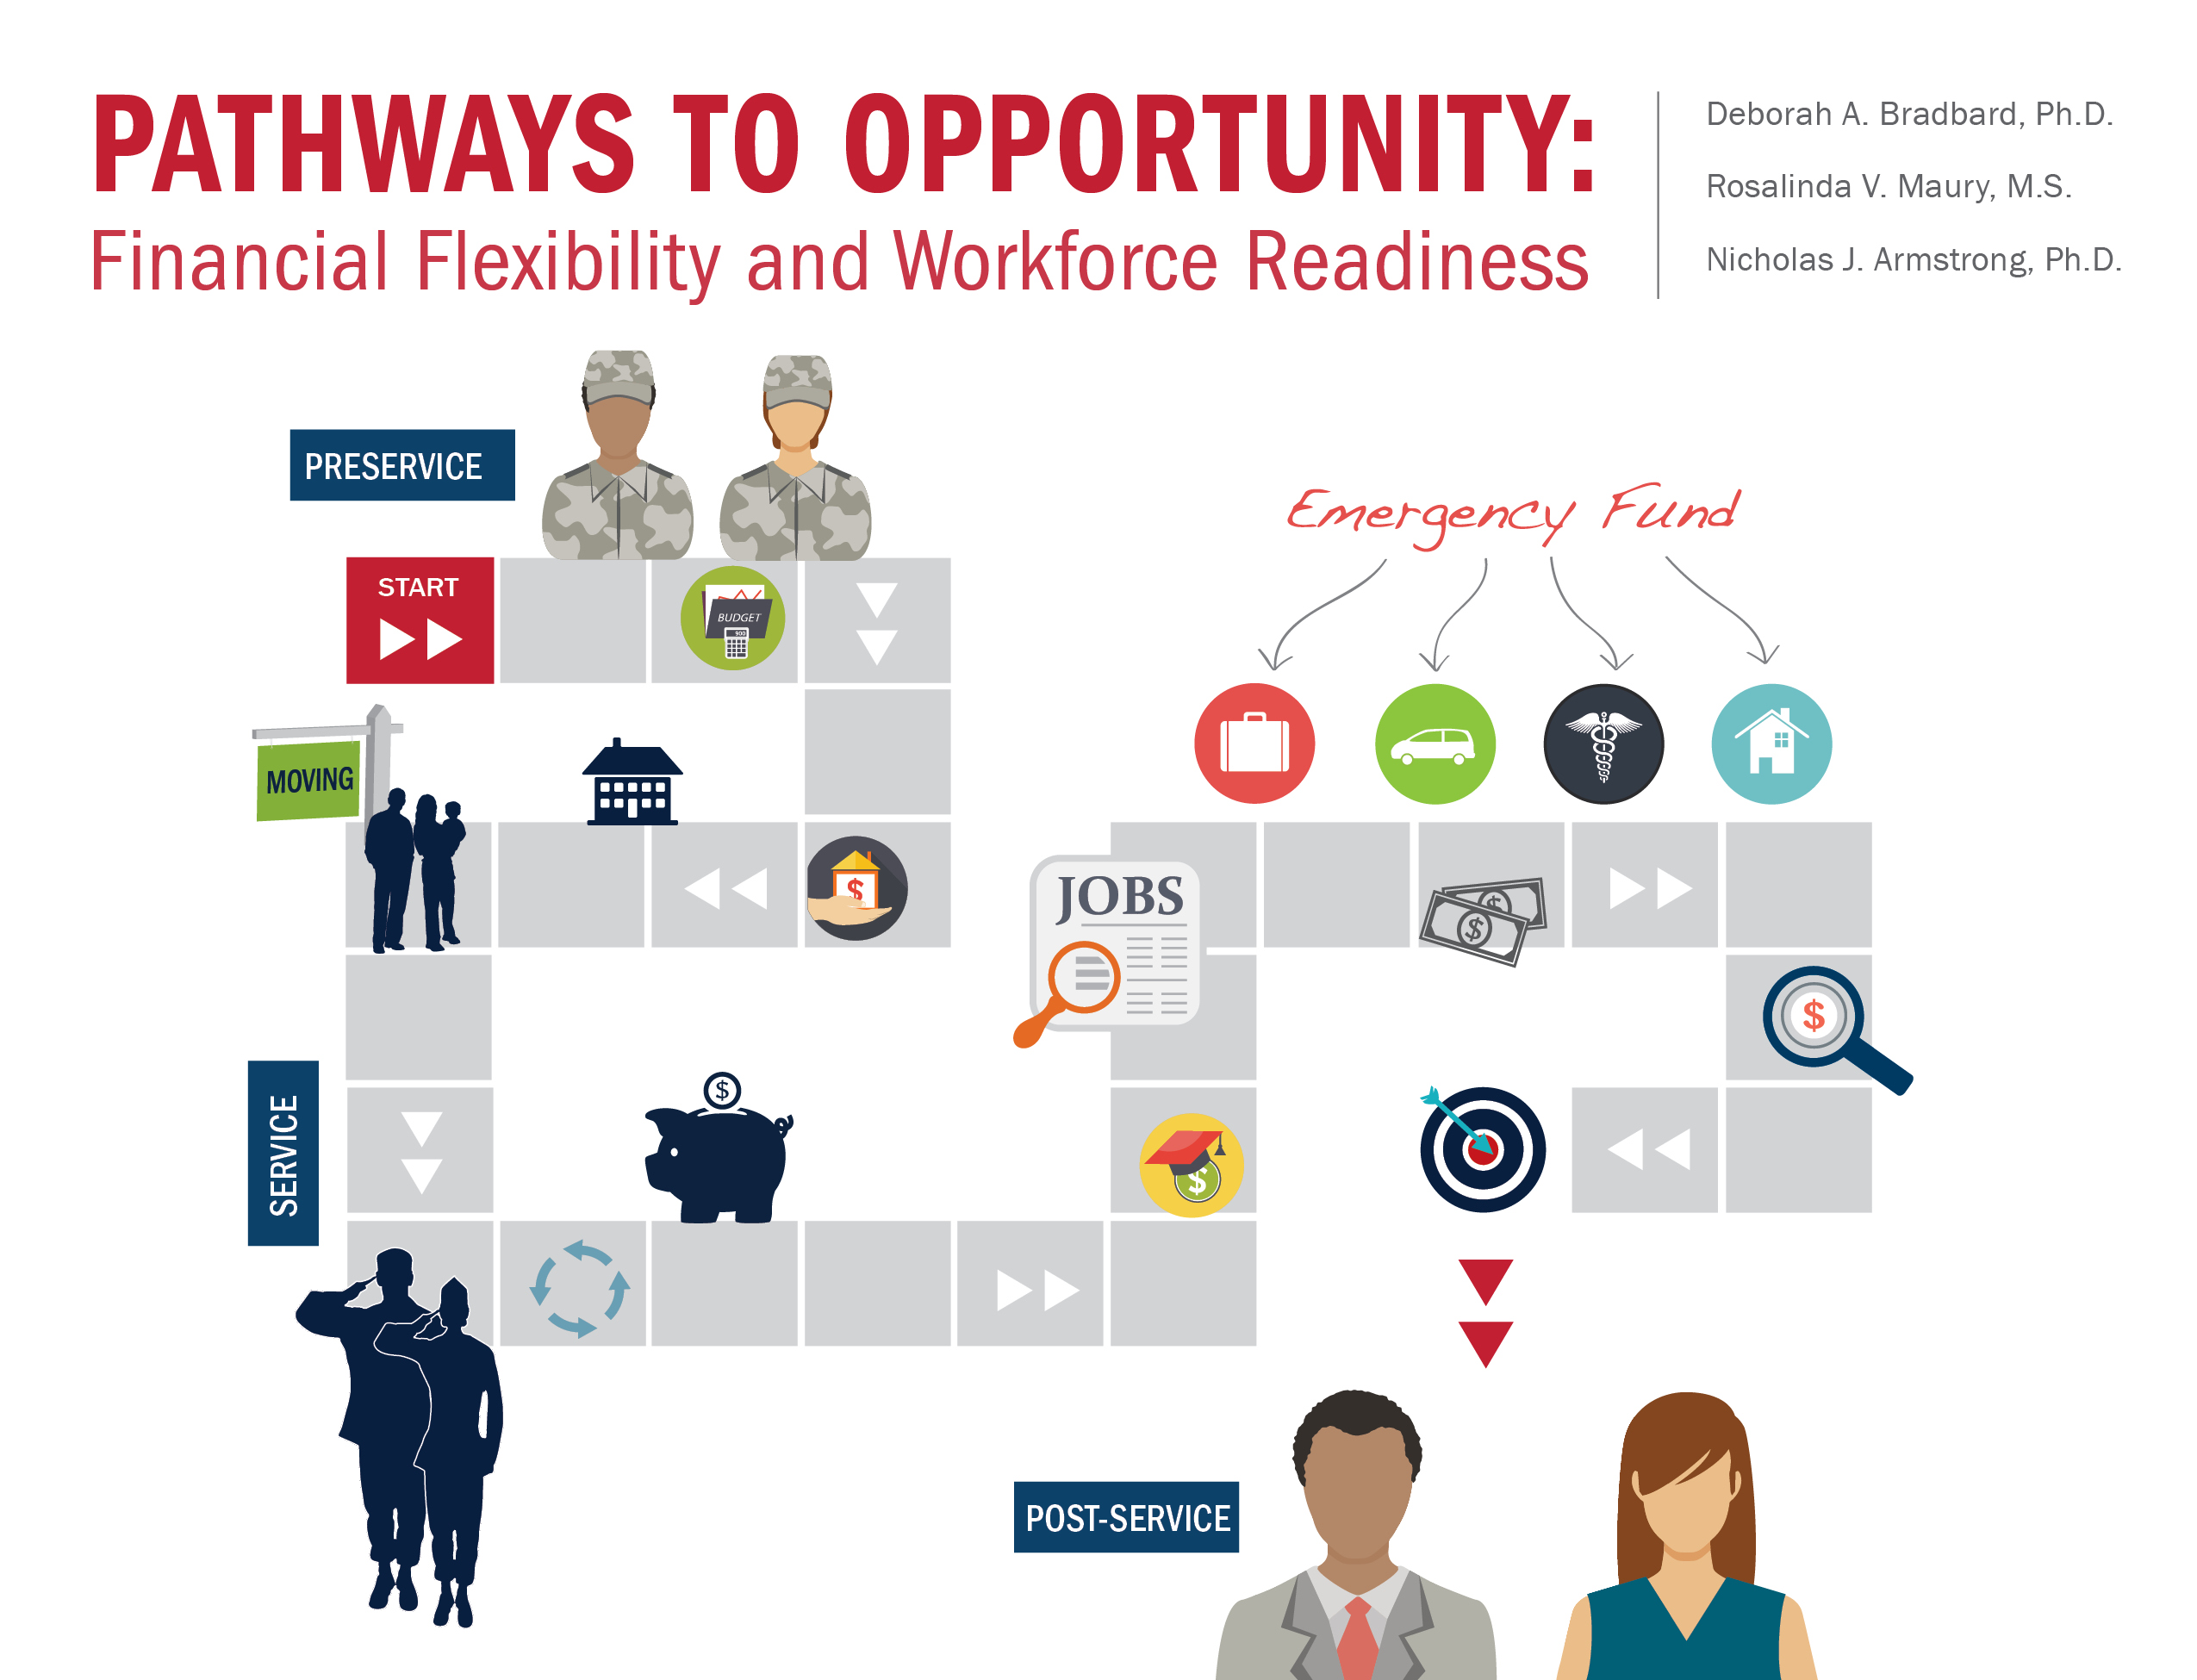 Pathways to Opportunity: Financial Flexibility and Workforce Readiness Cover